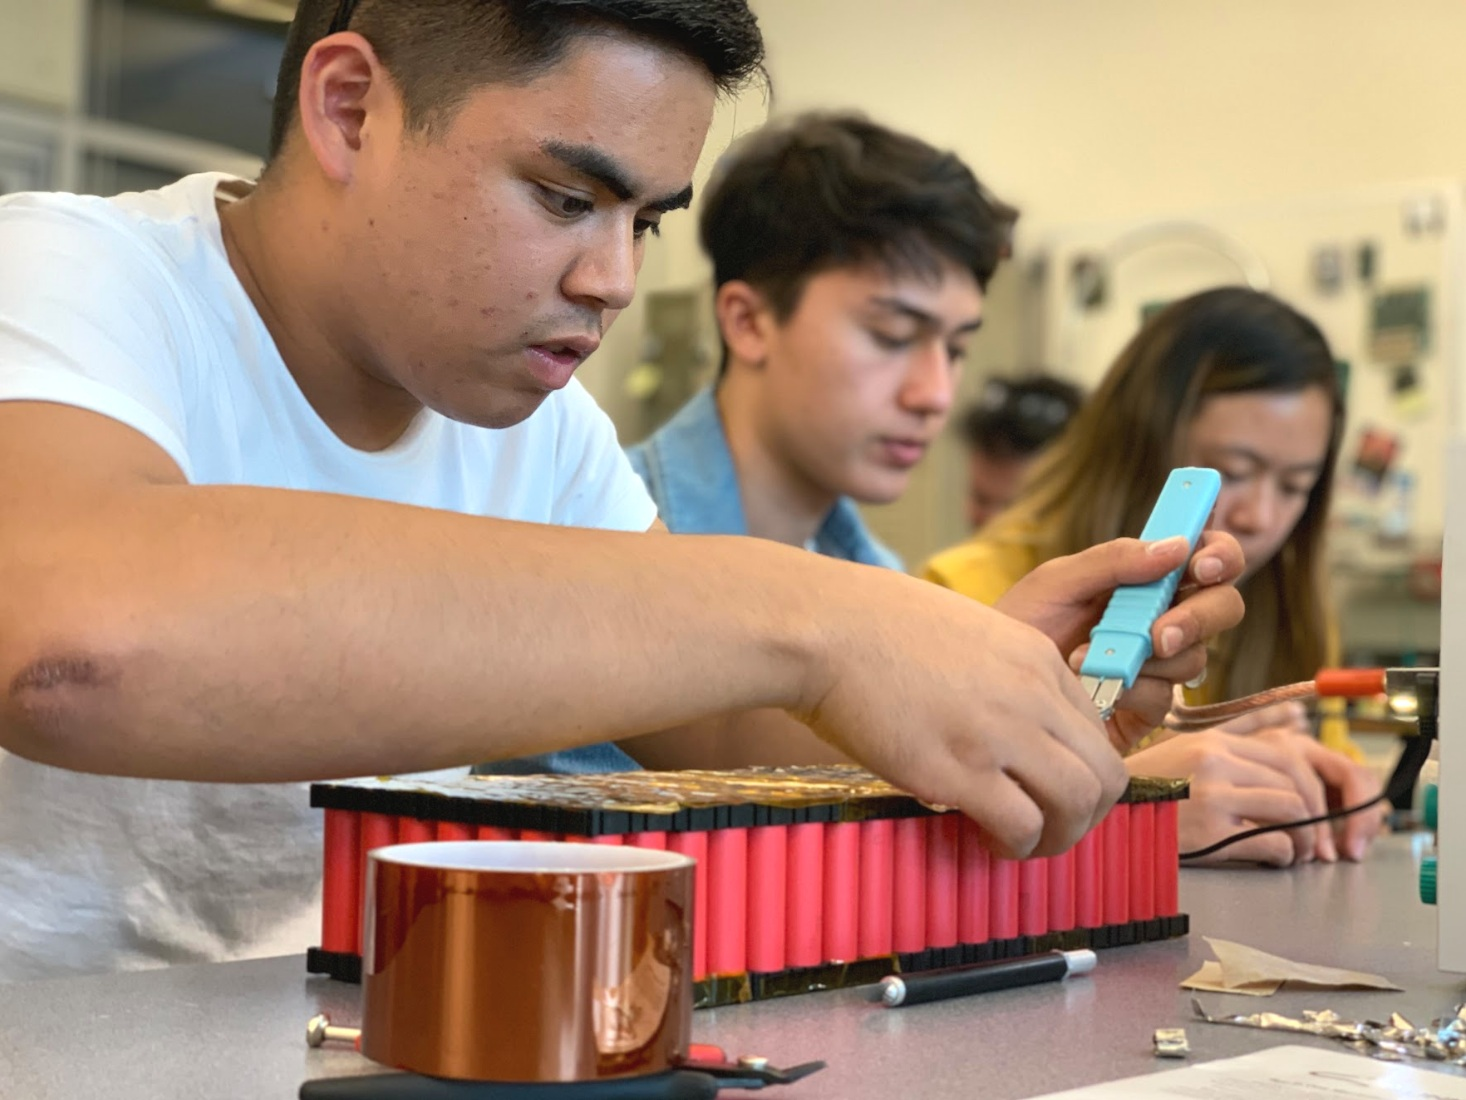 Innovation - The leads and all other members of the team work hard everyday to make creative improvements to the solar car electrically, mechanically, and design wise.